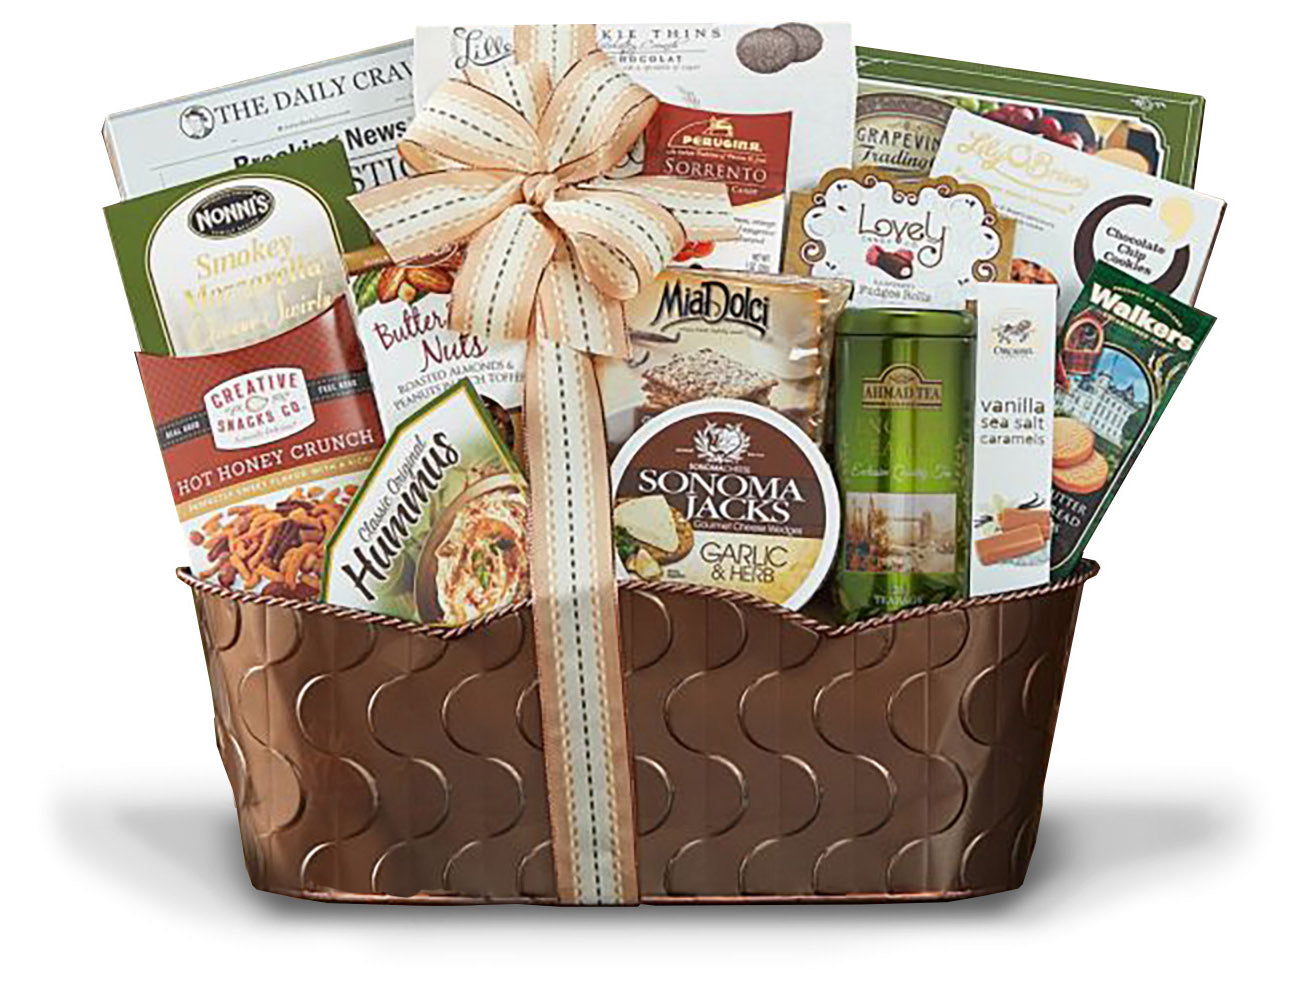 Wine Country Gift Baskets - Find Unique Christmas Gifts